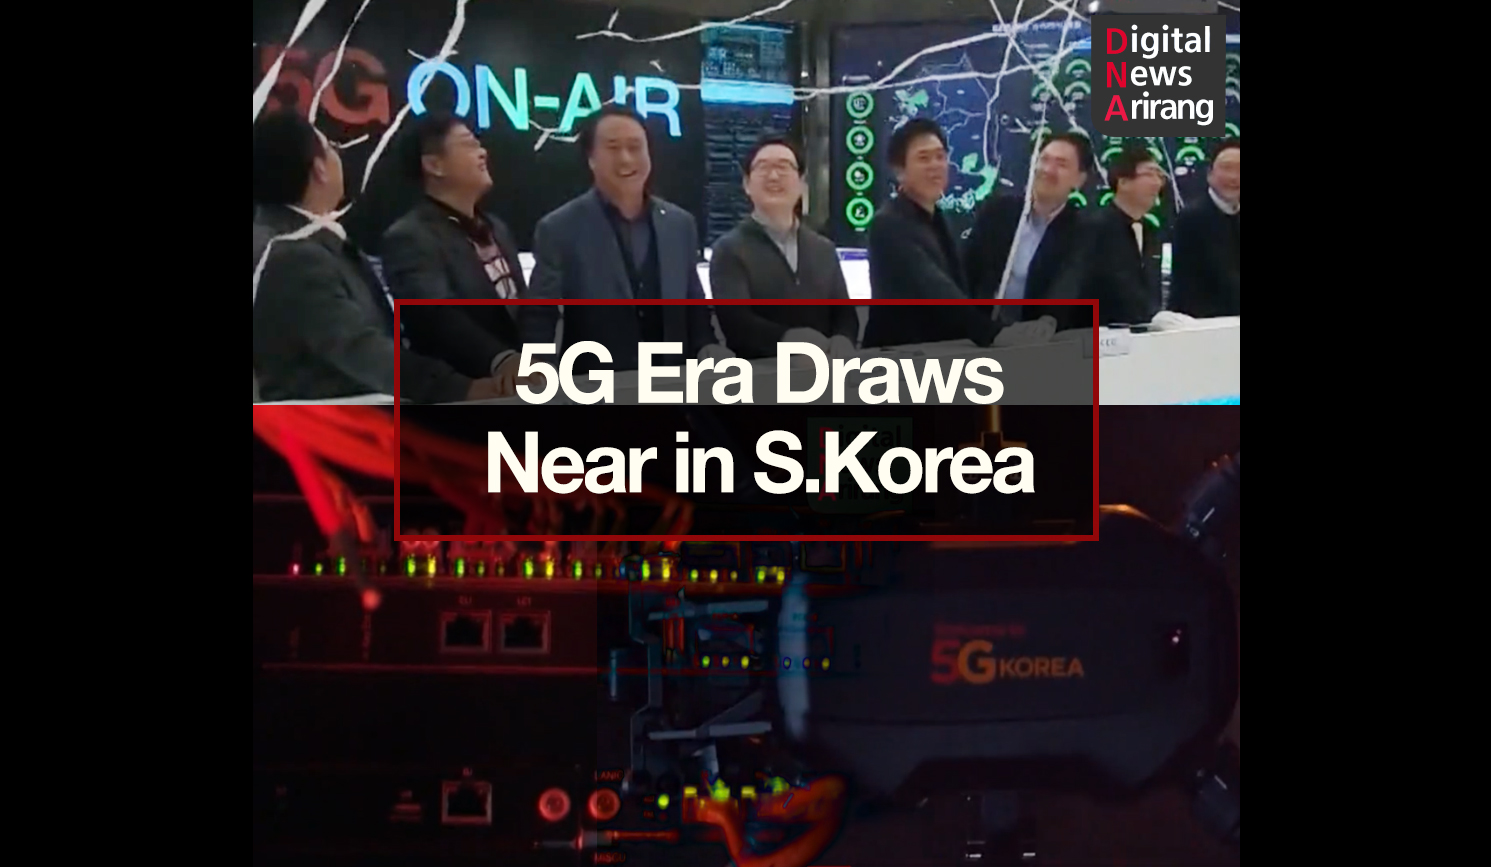 5G Era Draws Near in S.Korea